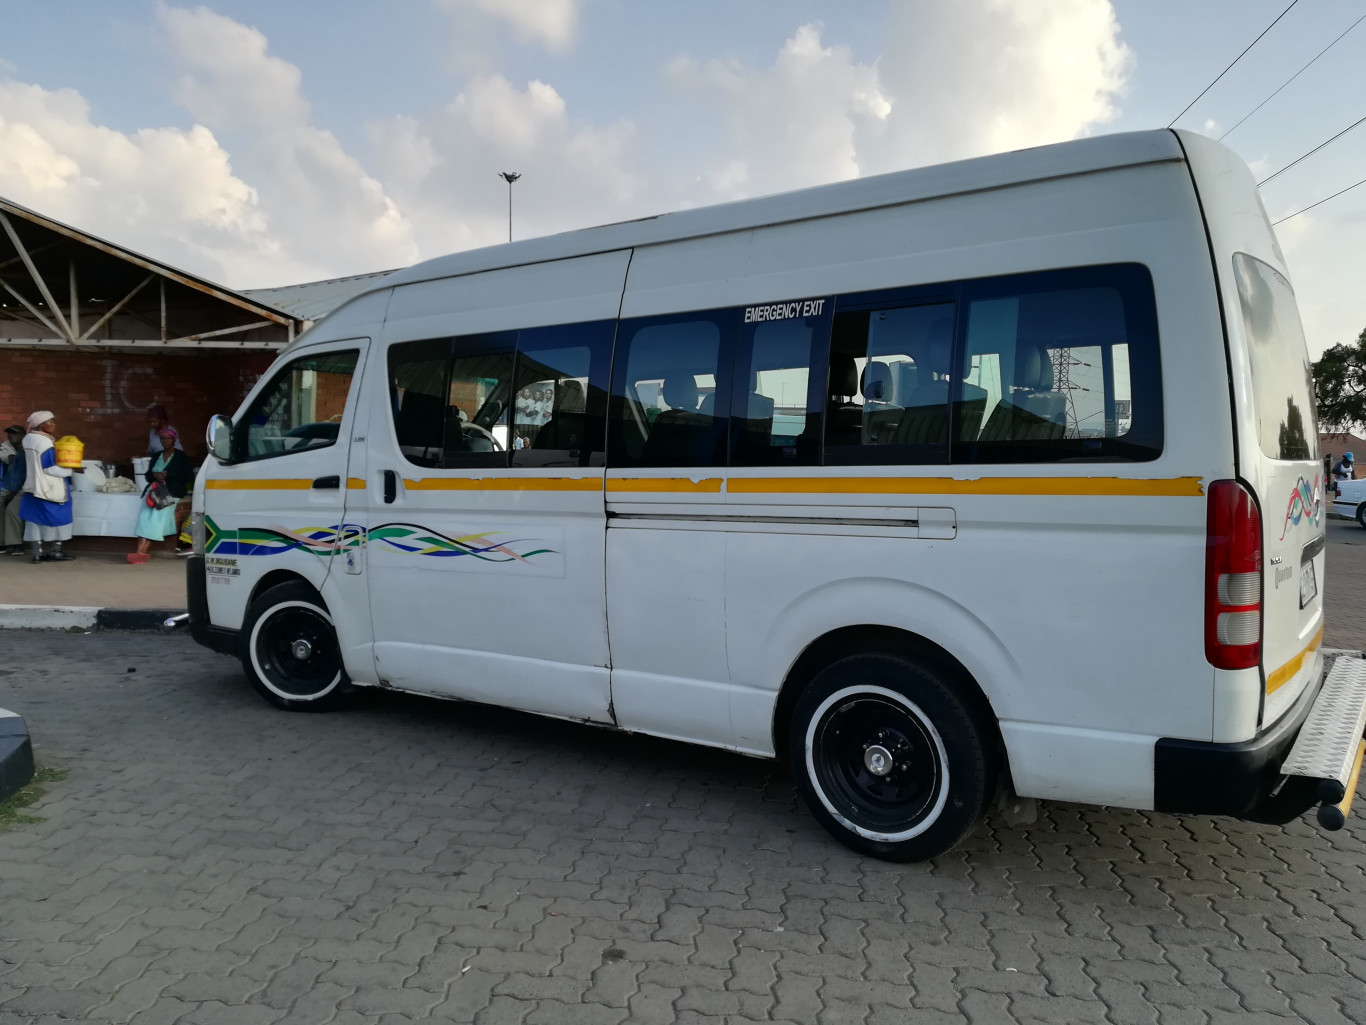 6 Taxi drivers arrested for hindering and obstructing infrastructure in front of the Gallows Hill Traffic Department